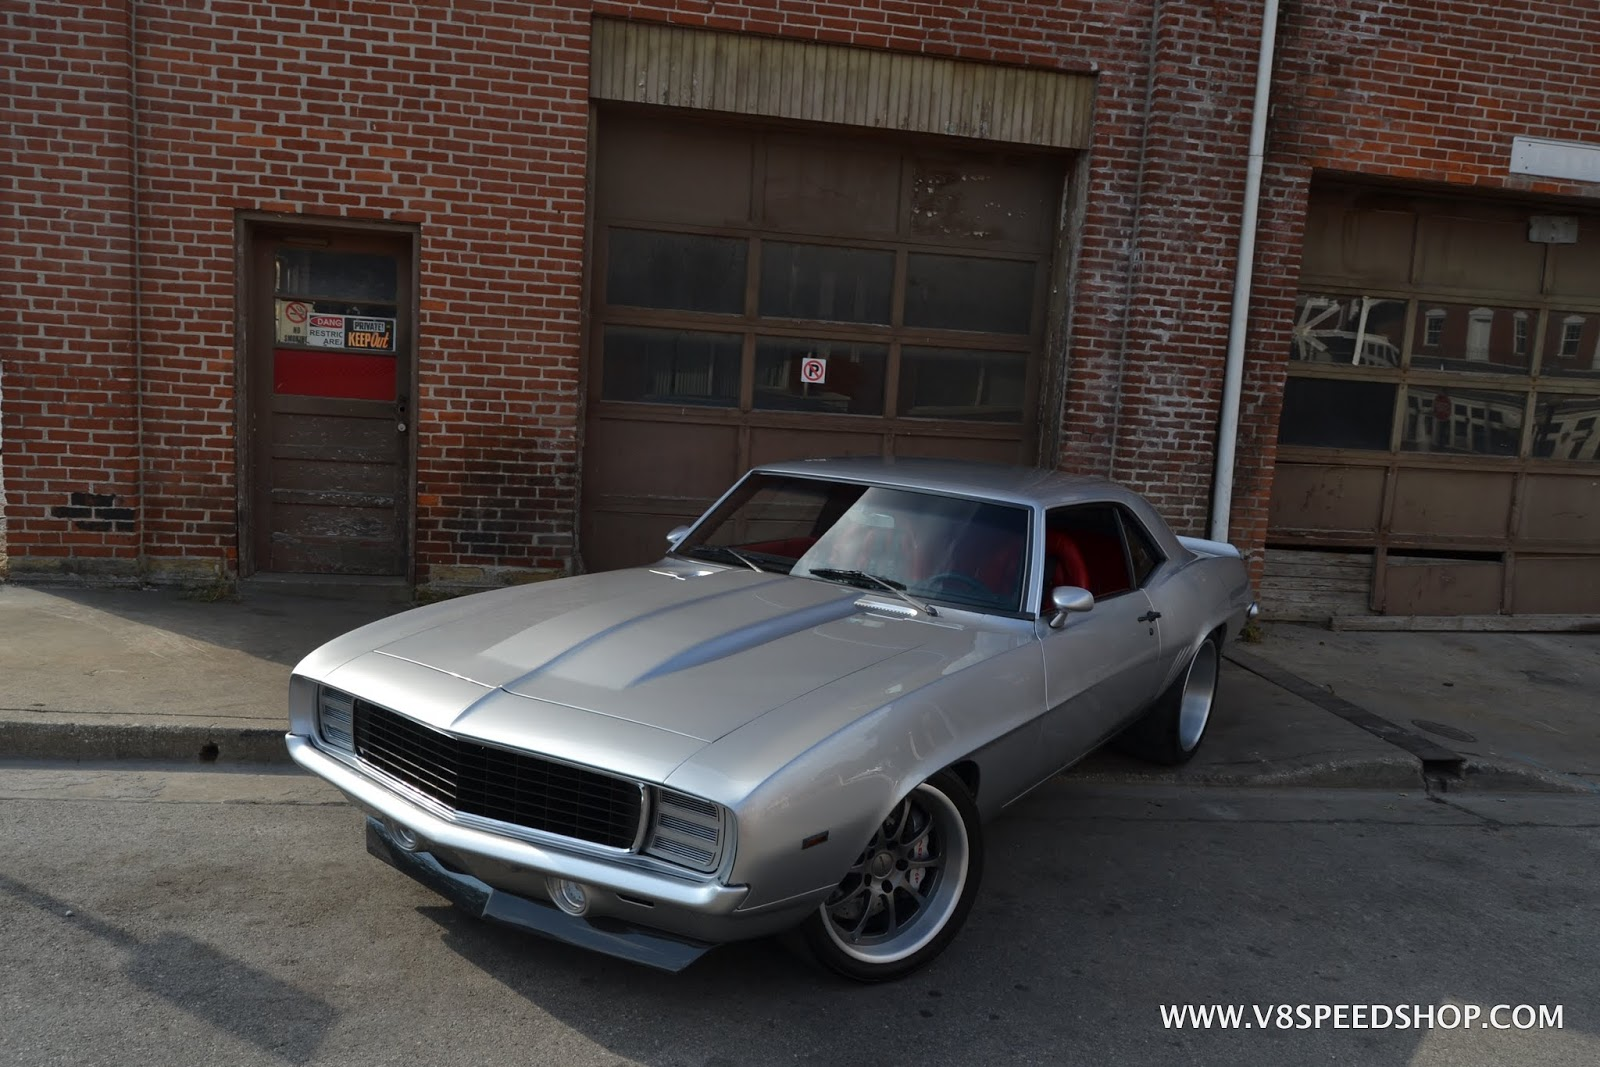 hight resolution of 1969 camaro transforms from big block to supercharged lt4 v8 at v8 speed resto shop